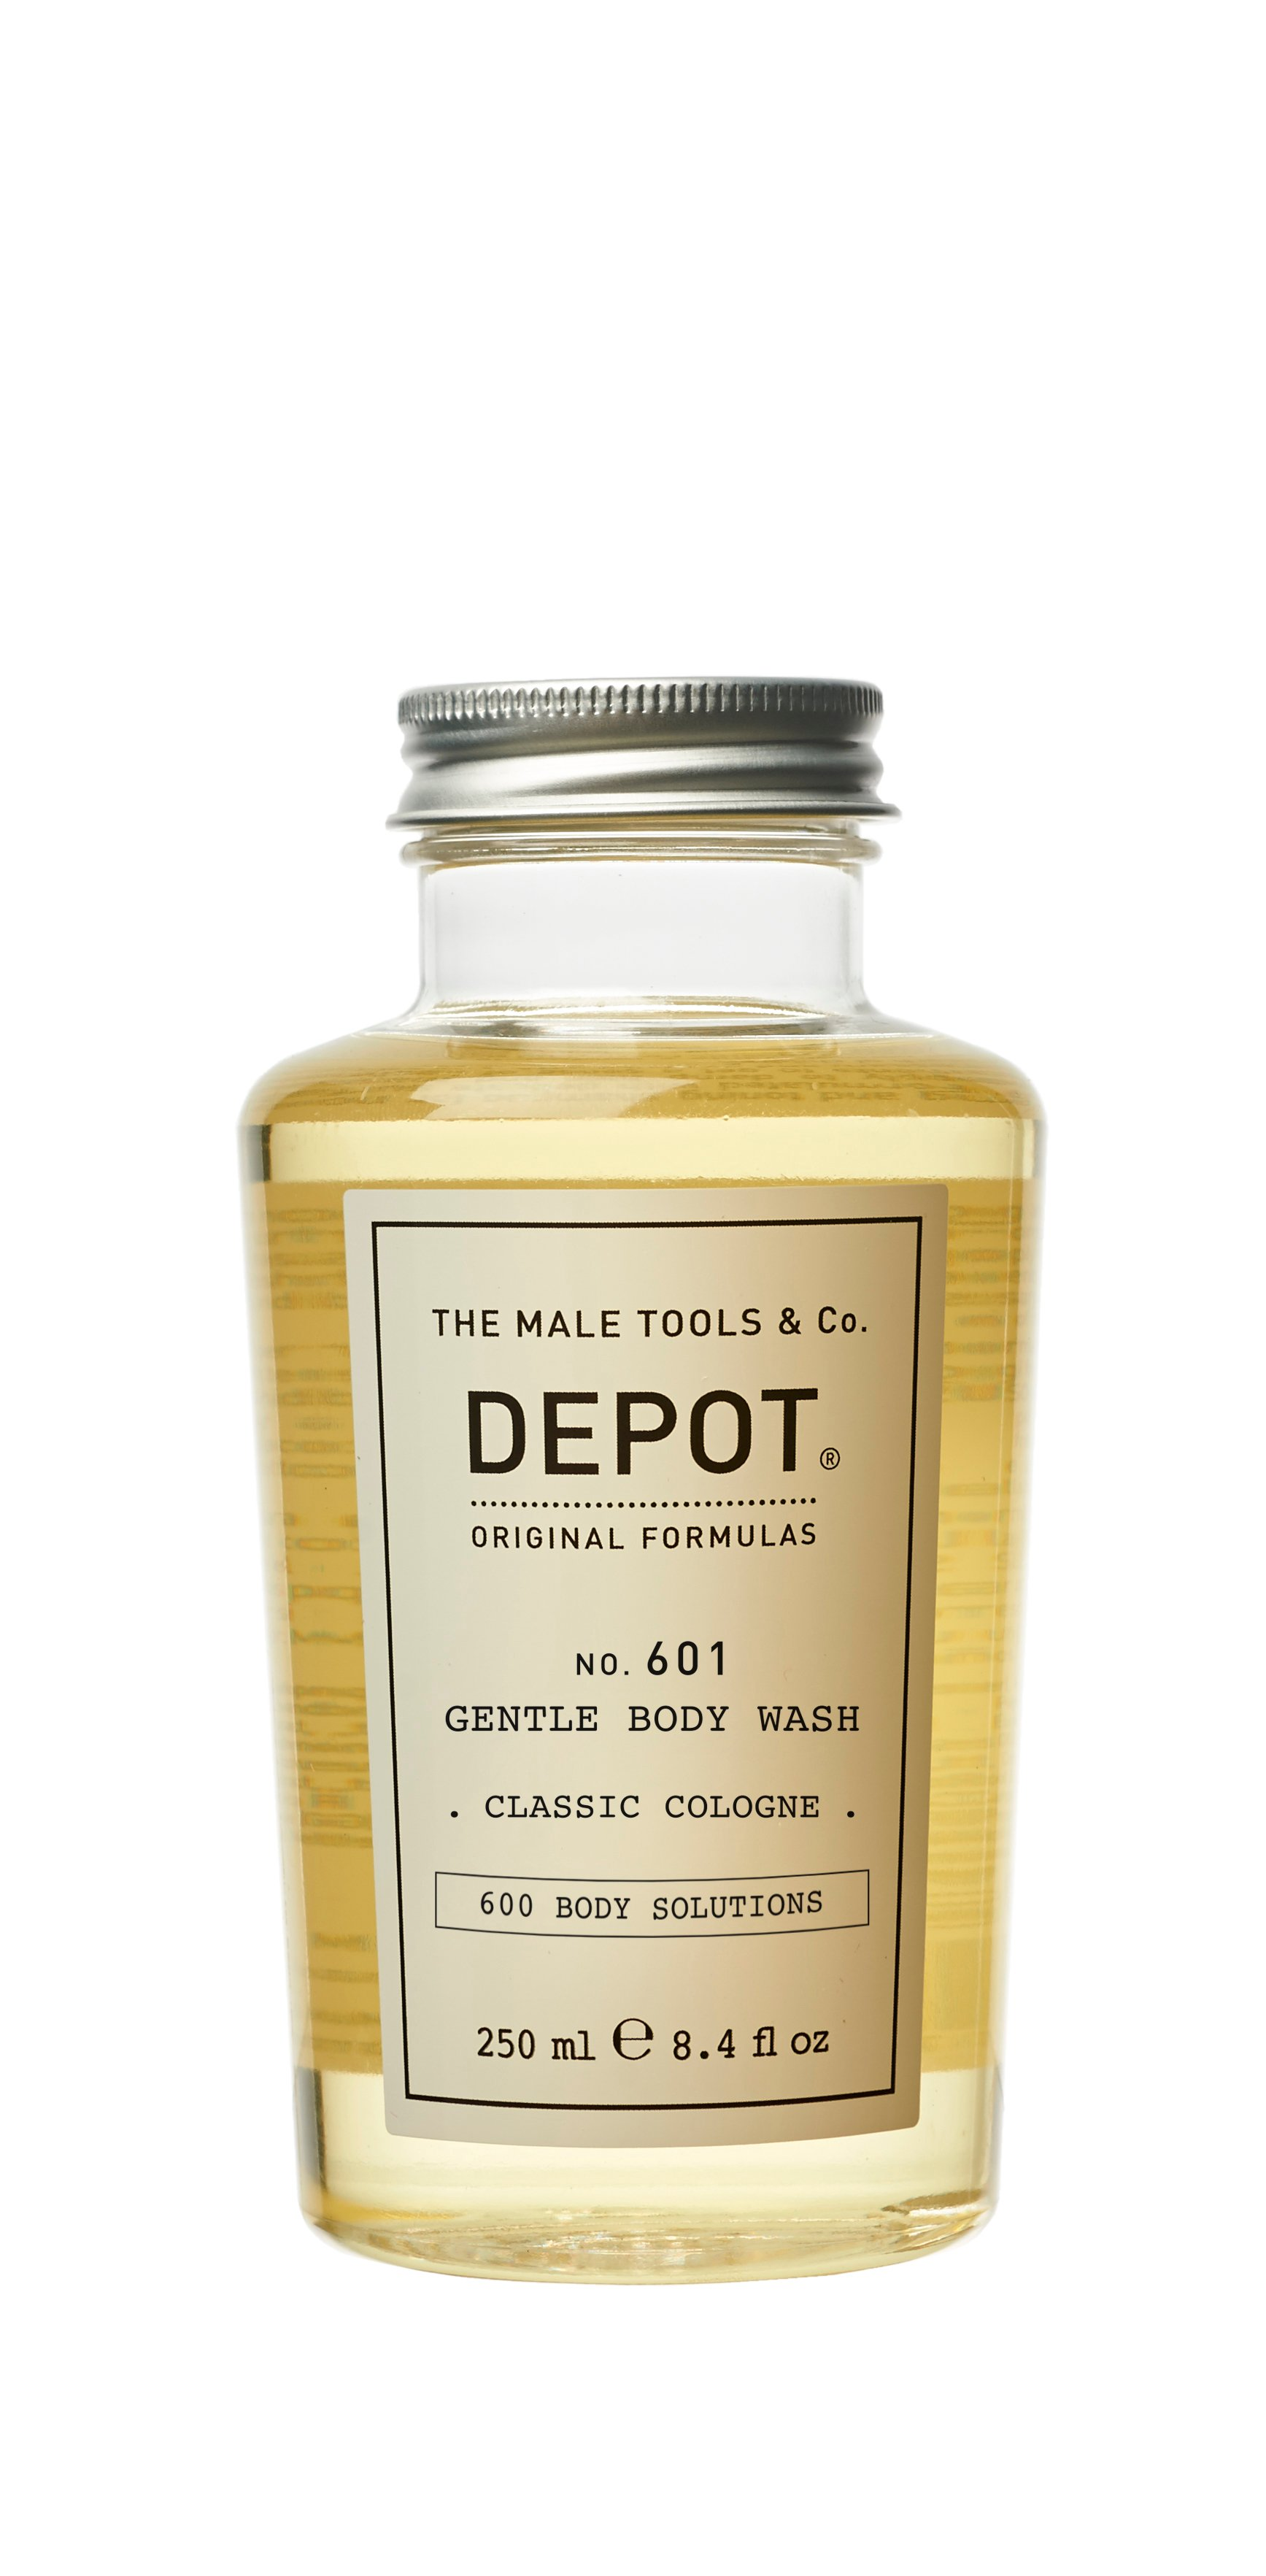 Depot - No. 601 Gentle Body Wash Classic Cologne 250 ml